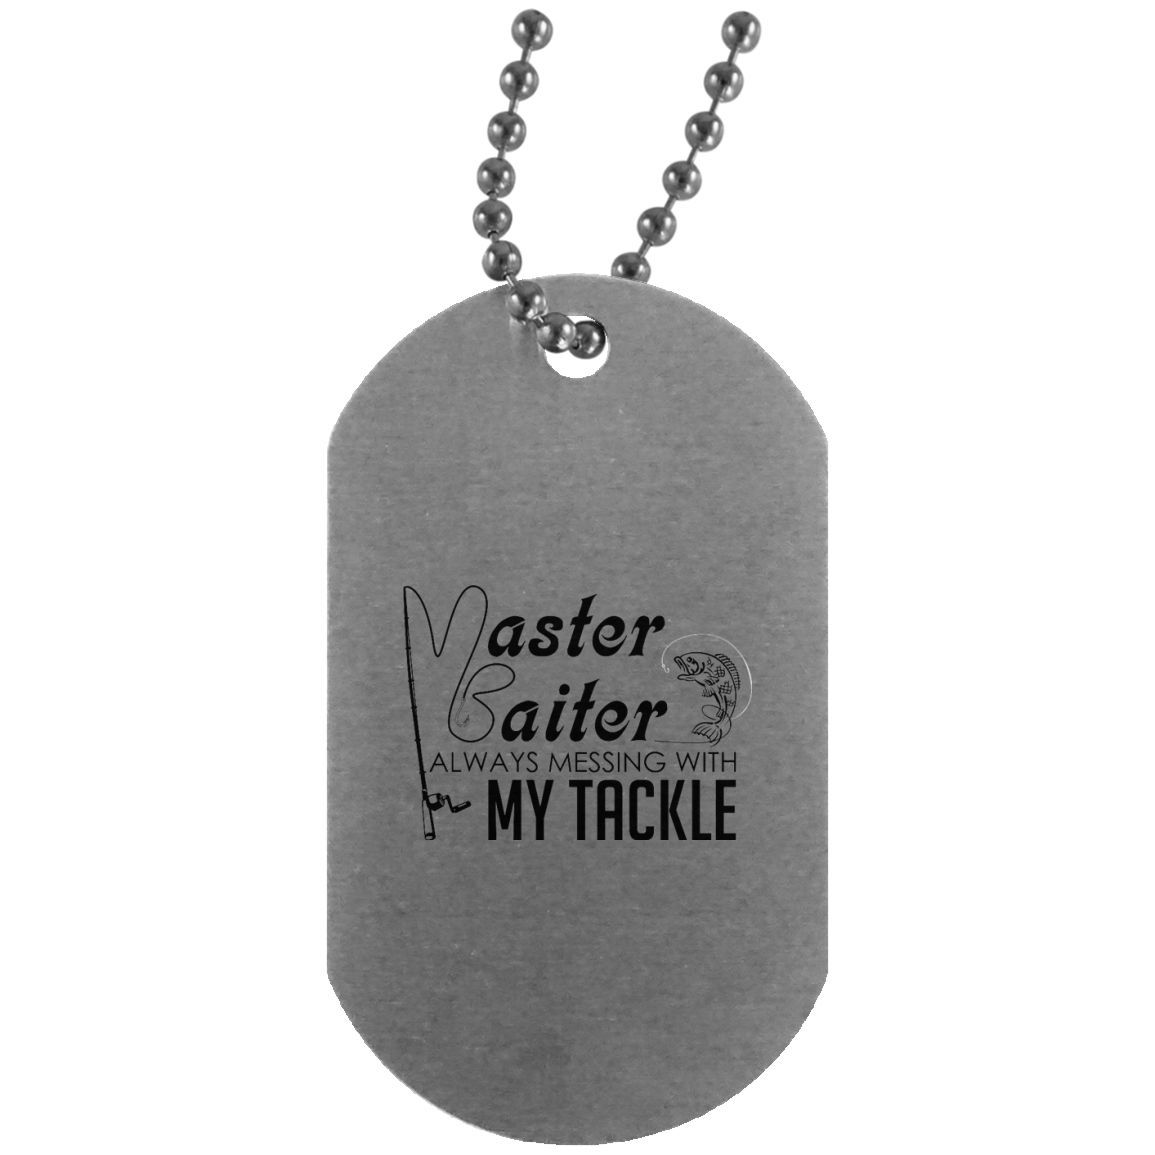 Master Baiter Always Messing With My Tackle 1 Dog Tag